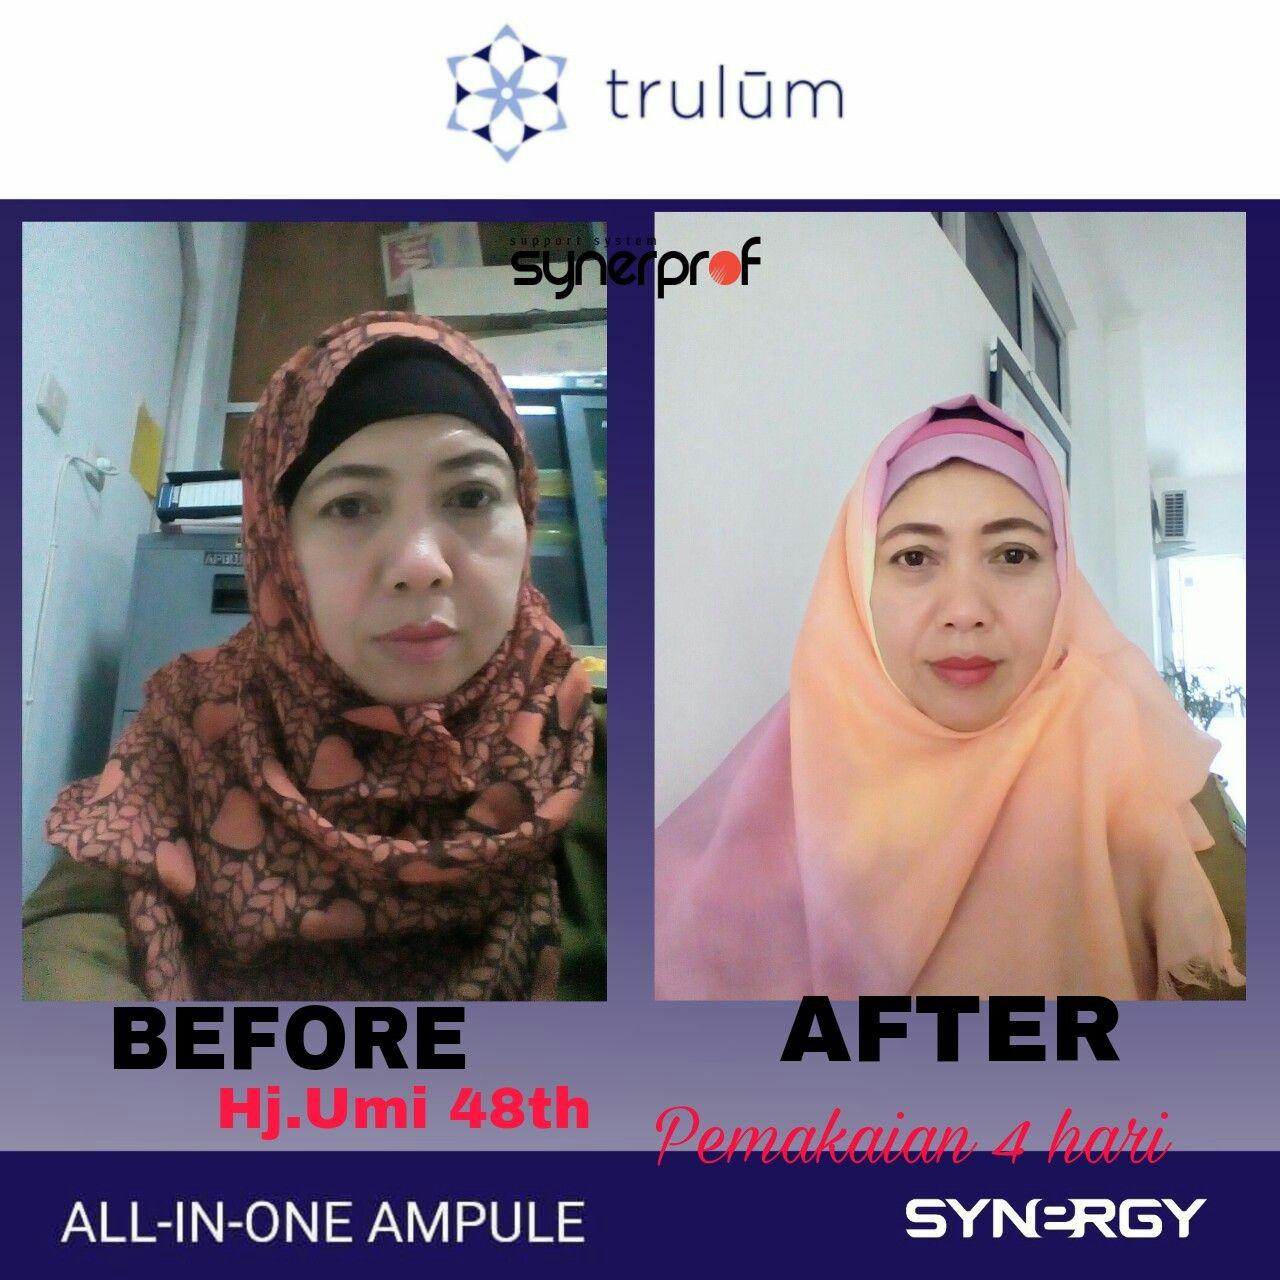 Jual Trulum All In One Ampoule Di Papalang WA: 08112338376